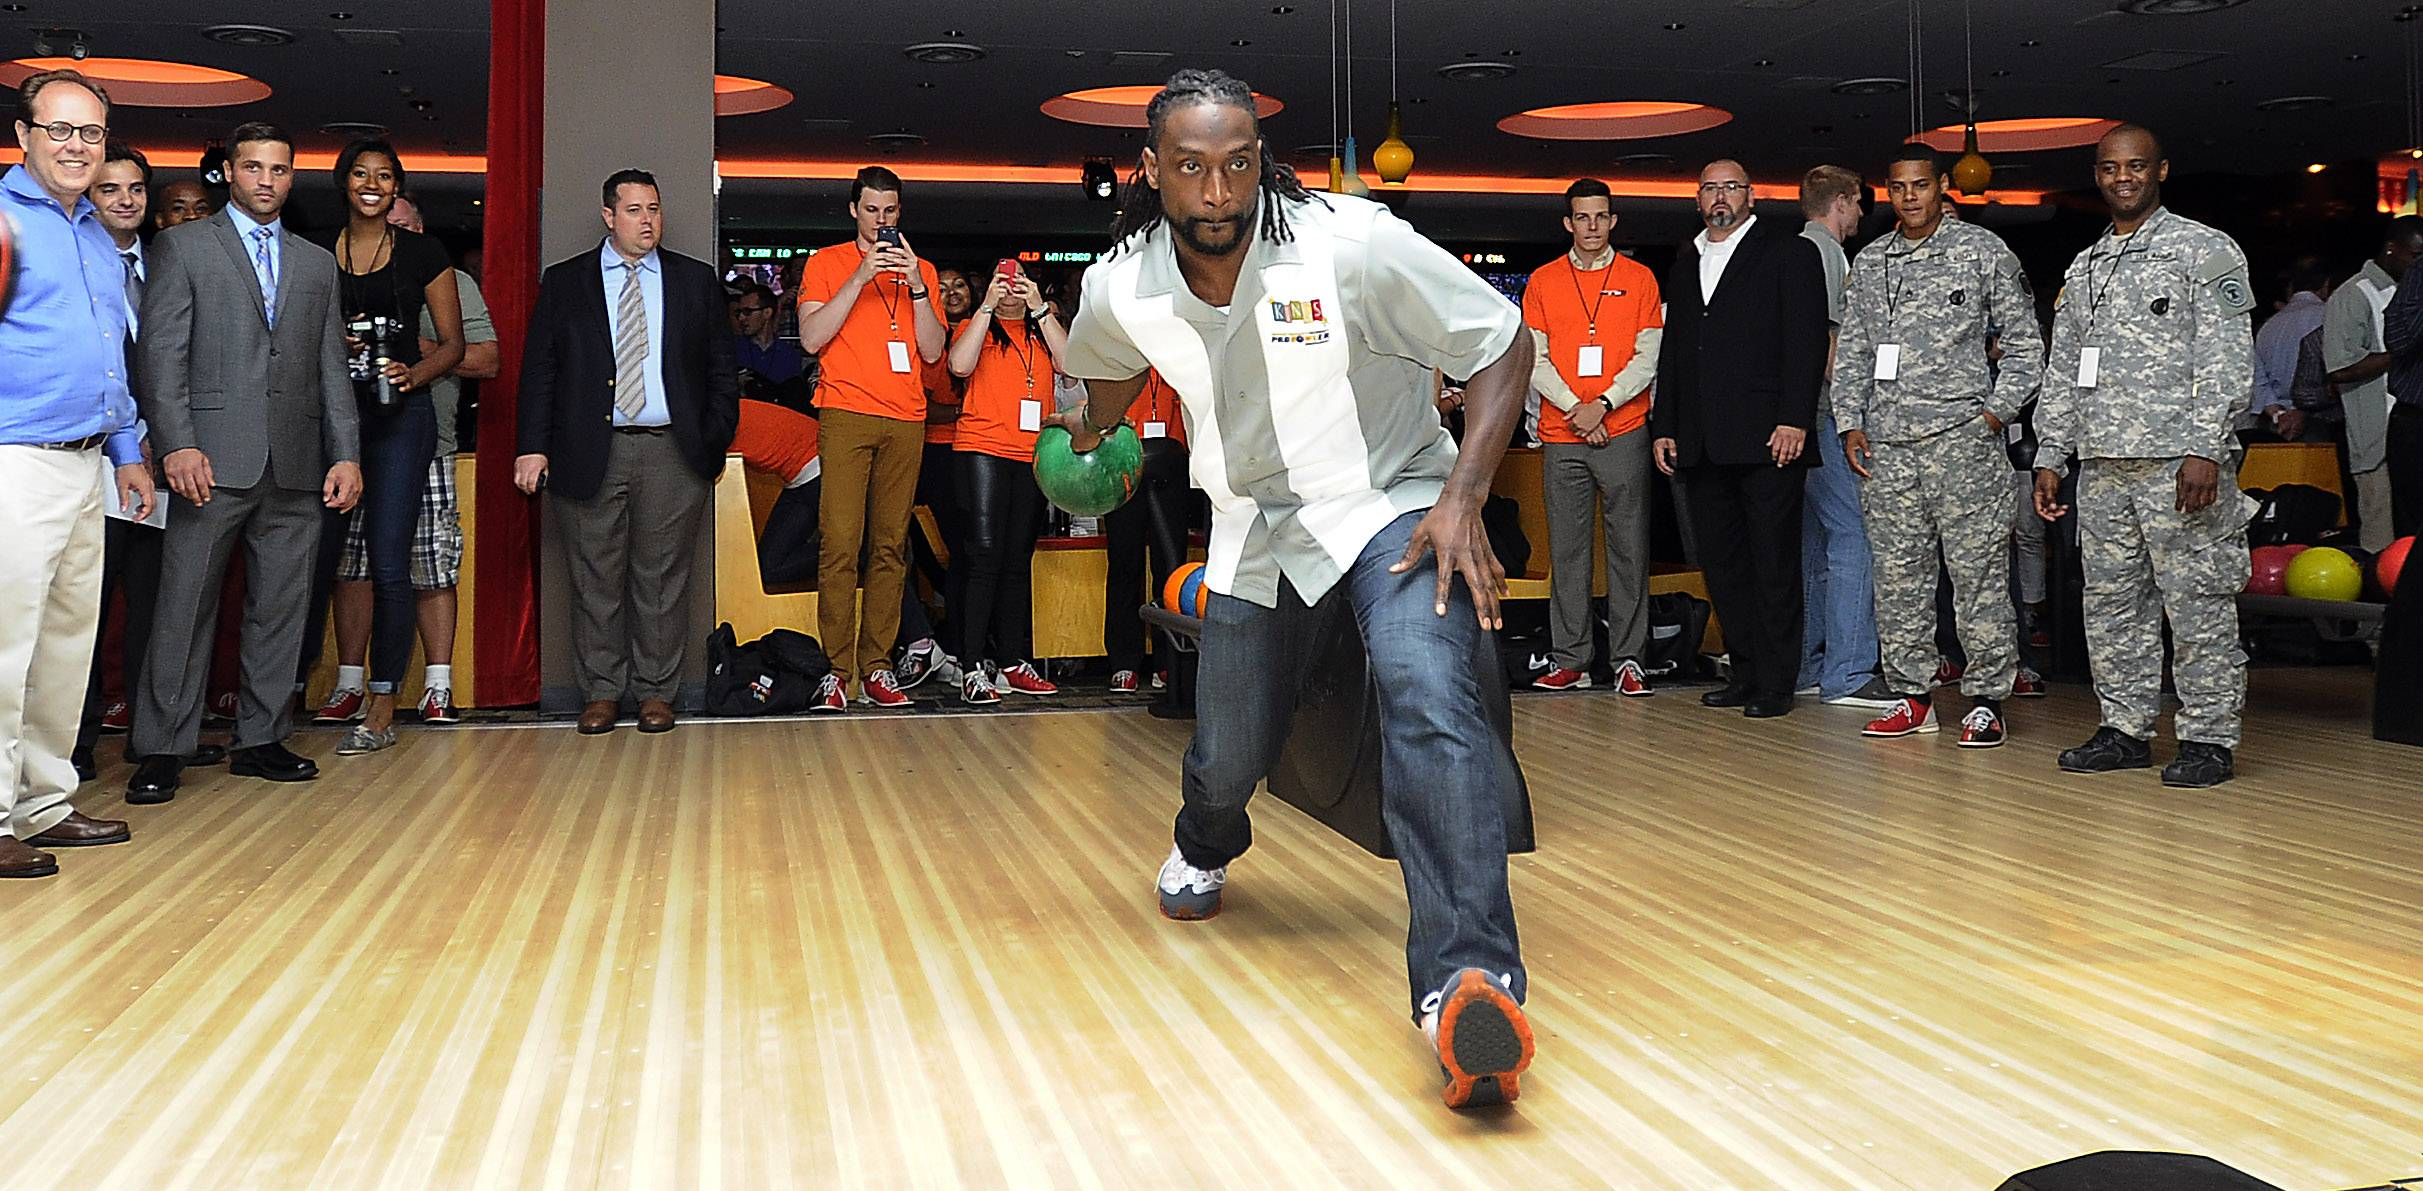 Bears cornerback Charles Tillman throws his ball down the alley Thursday as he kicks off the third annual Charles Tillman Celebrity Pro BOWLer Tournament at Kings Lanes, Lounge & Sports in Rosemont.